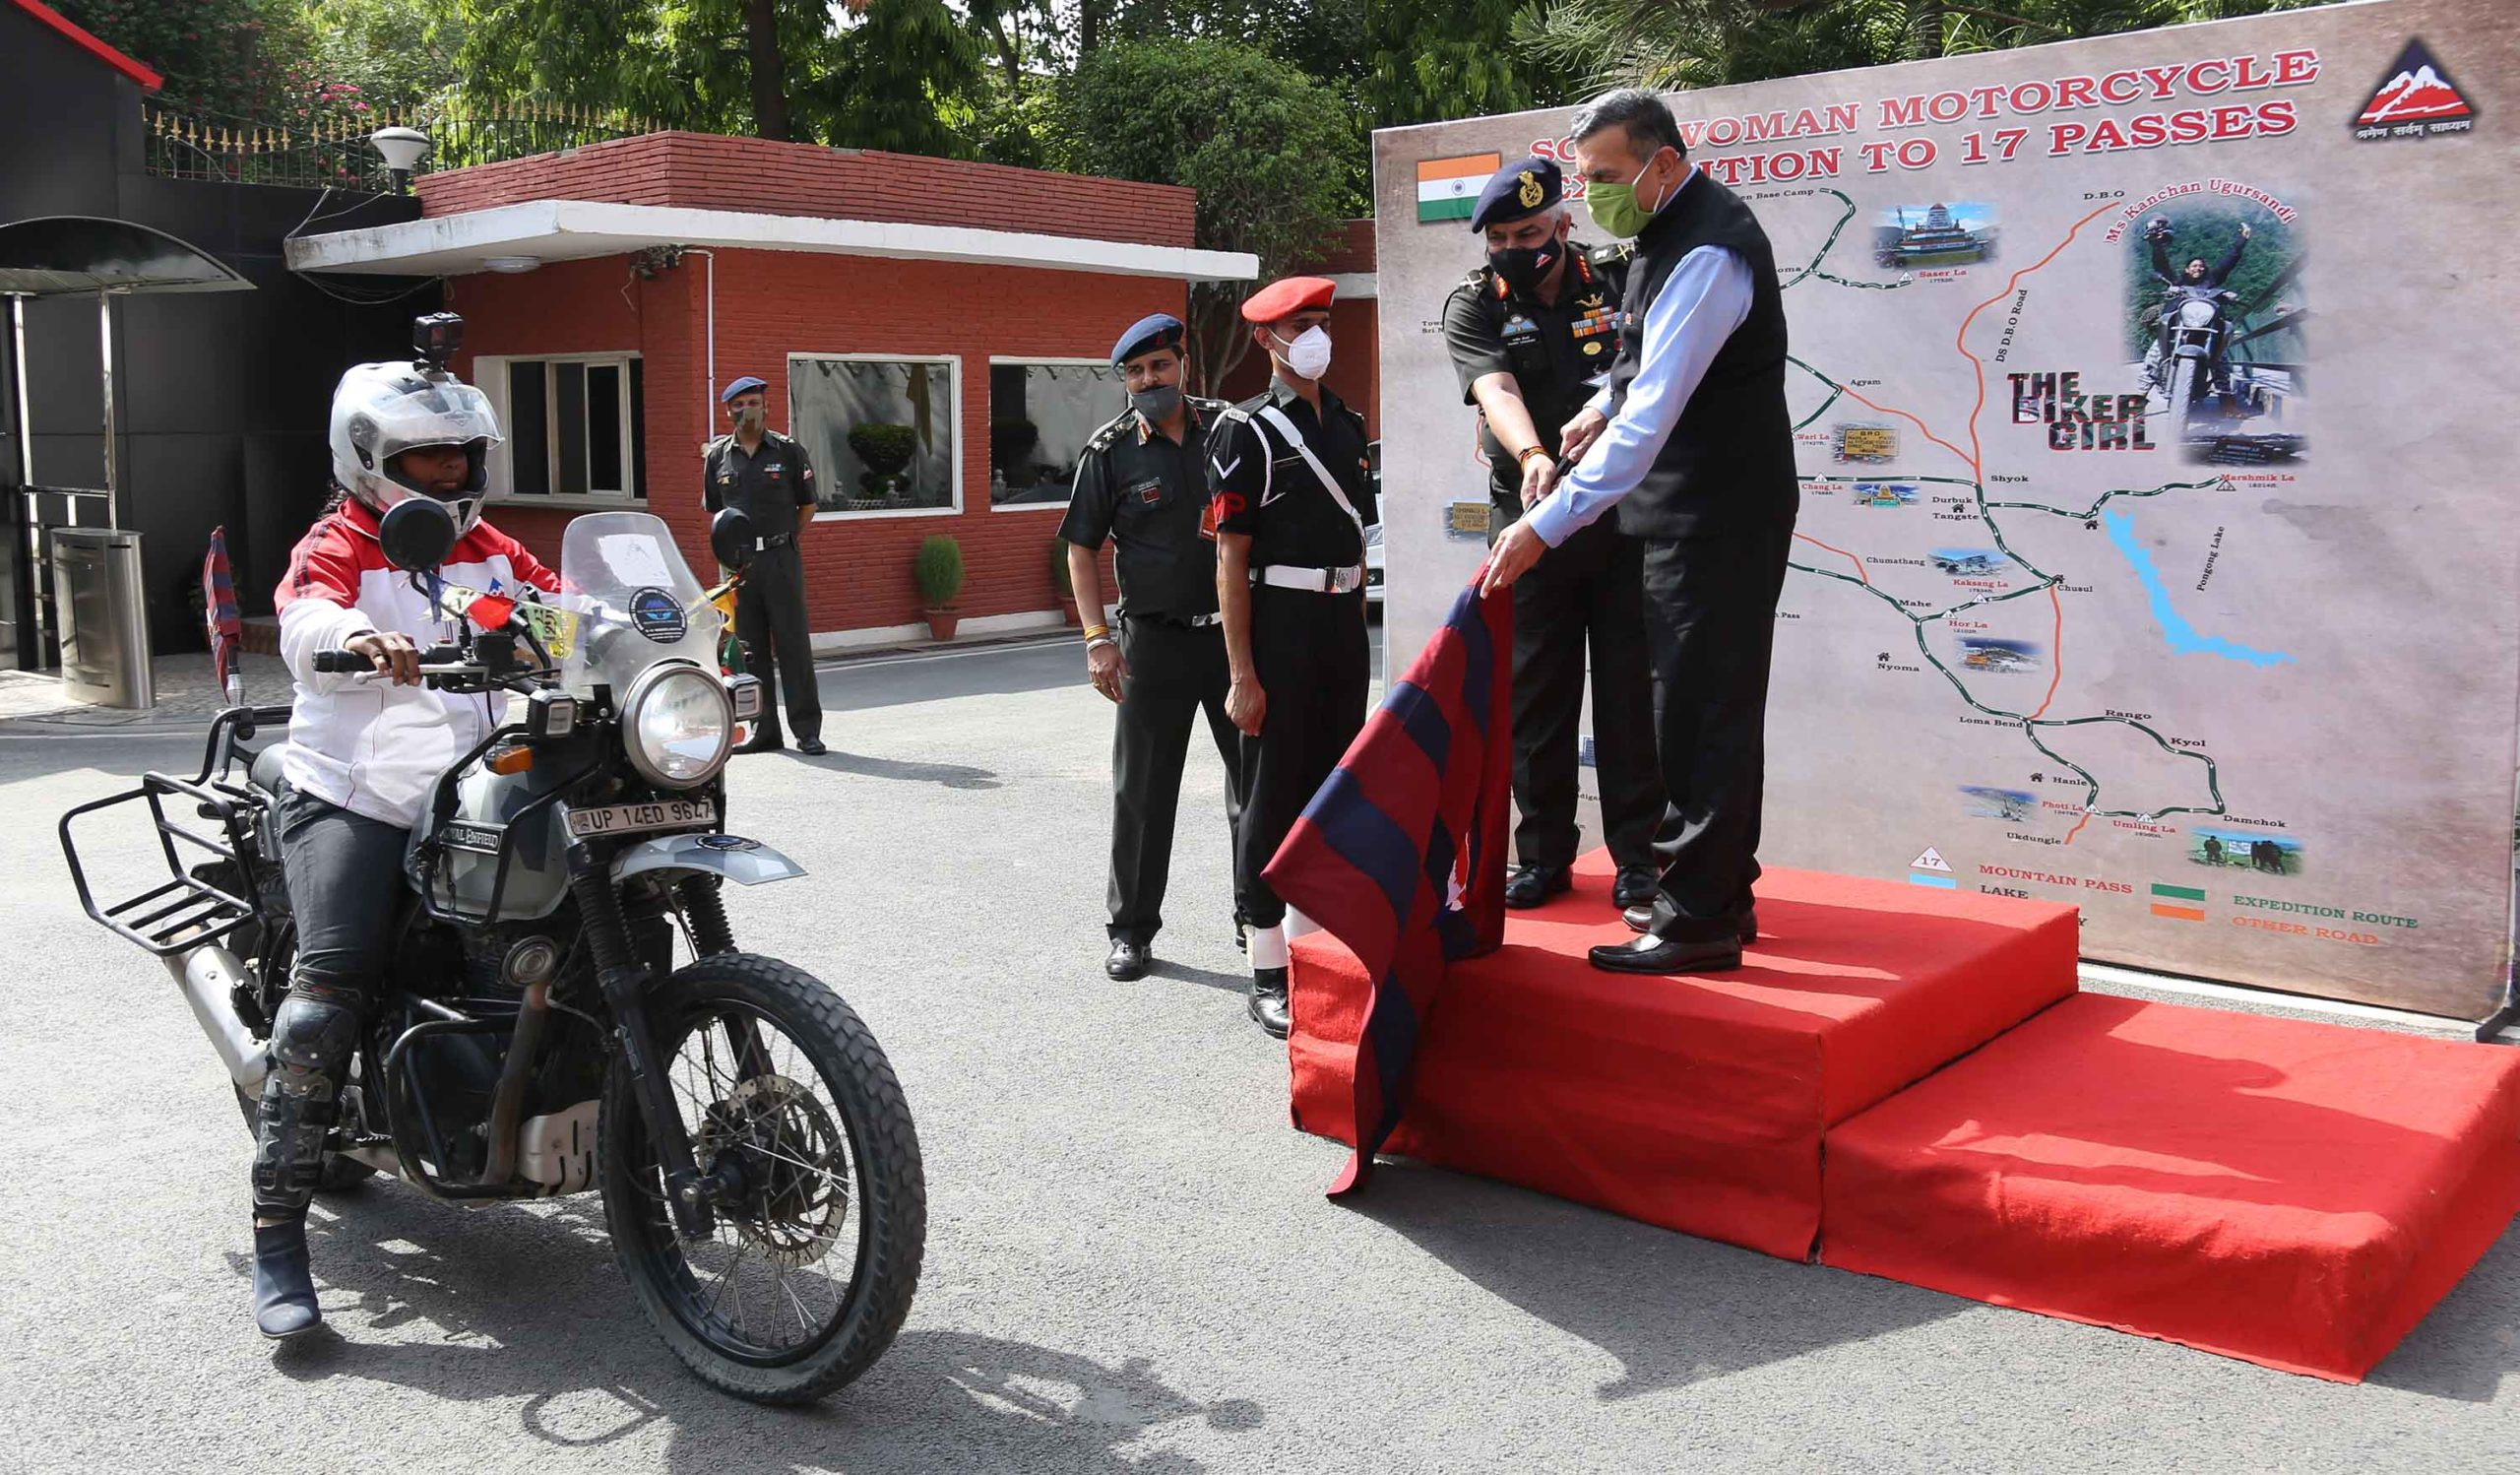 World's first solo motorcycle expedition in Northern Himalayan passes culminates